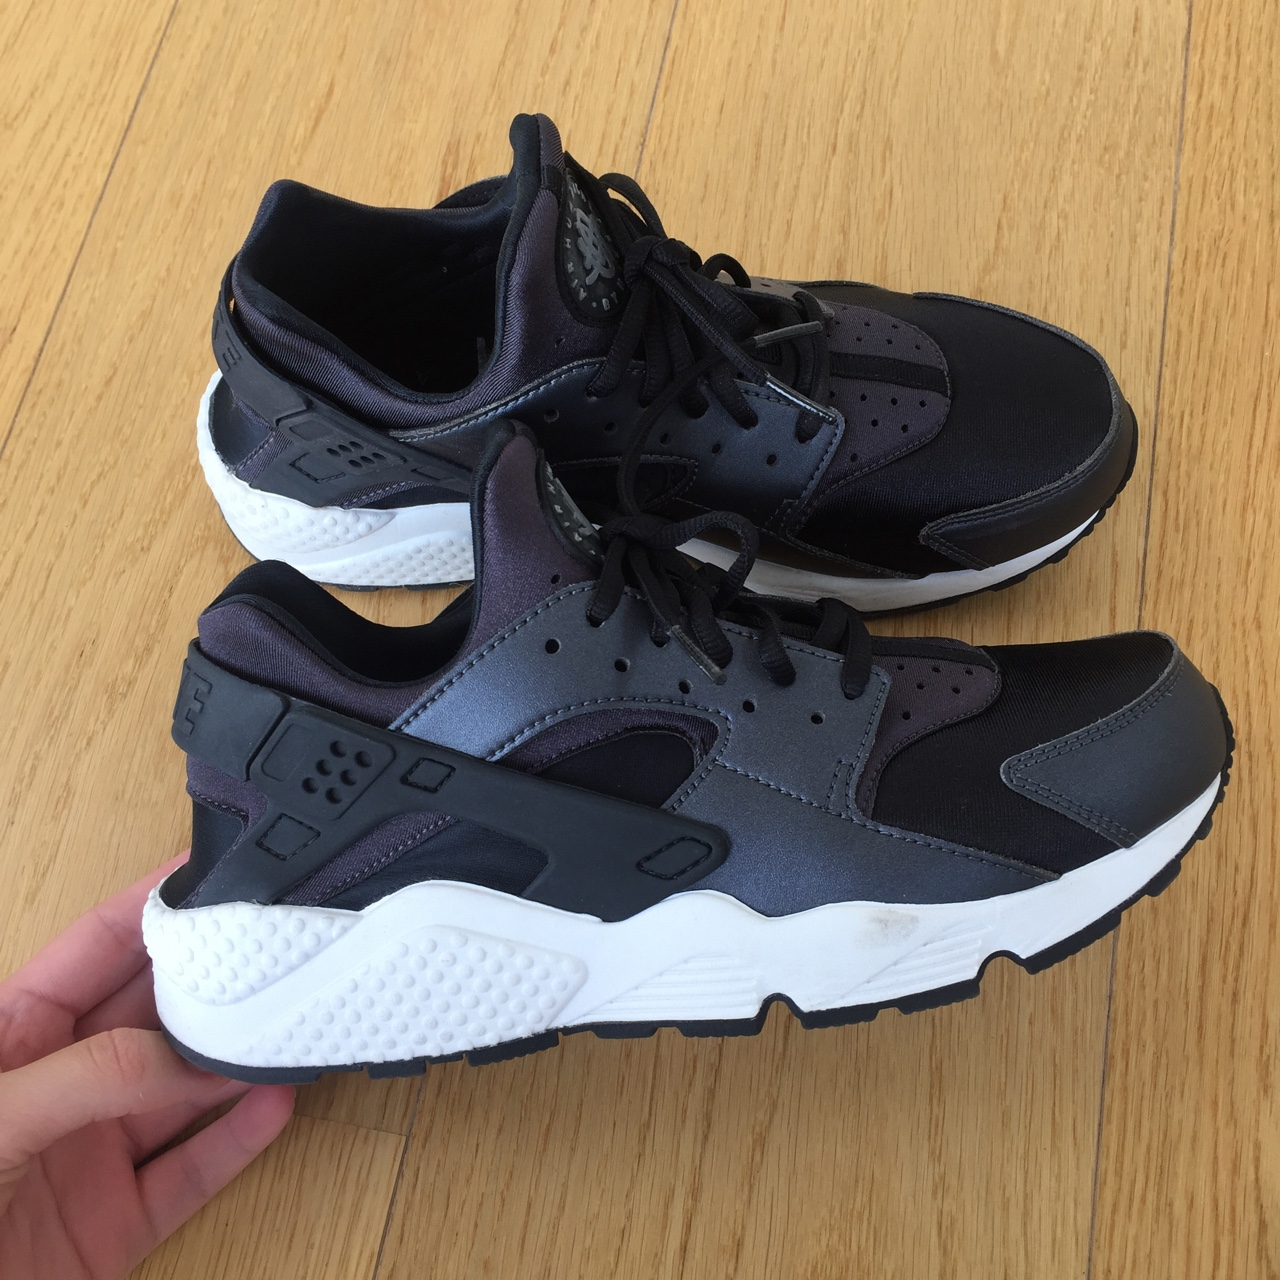 size 40 4ead8 9bd52 Nike Air Huarache Run Special Edition. Black. Very... - Depop